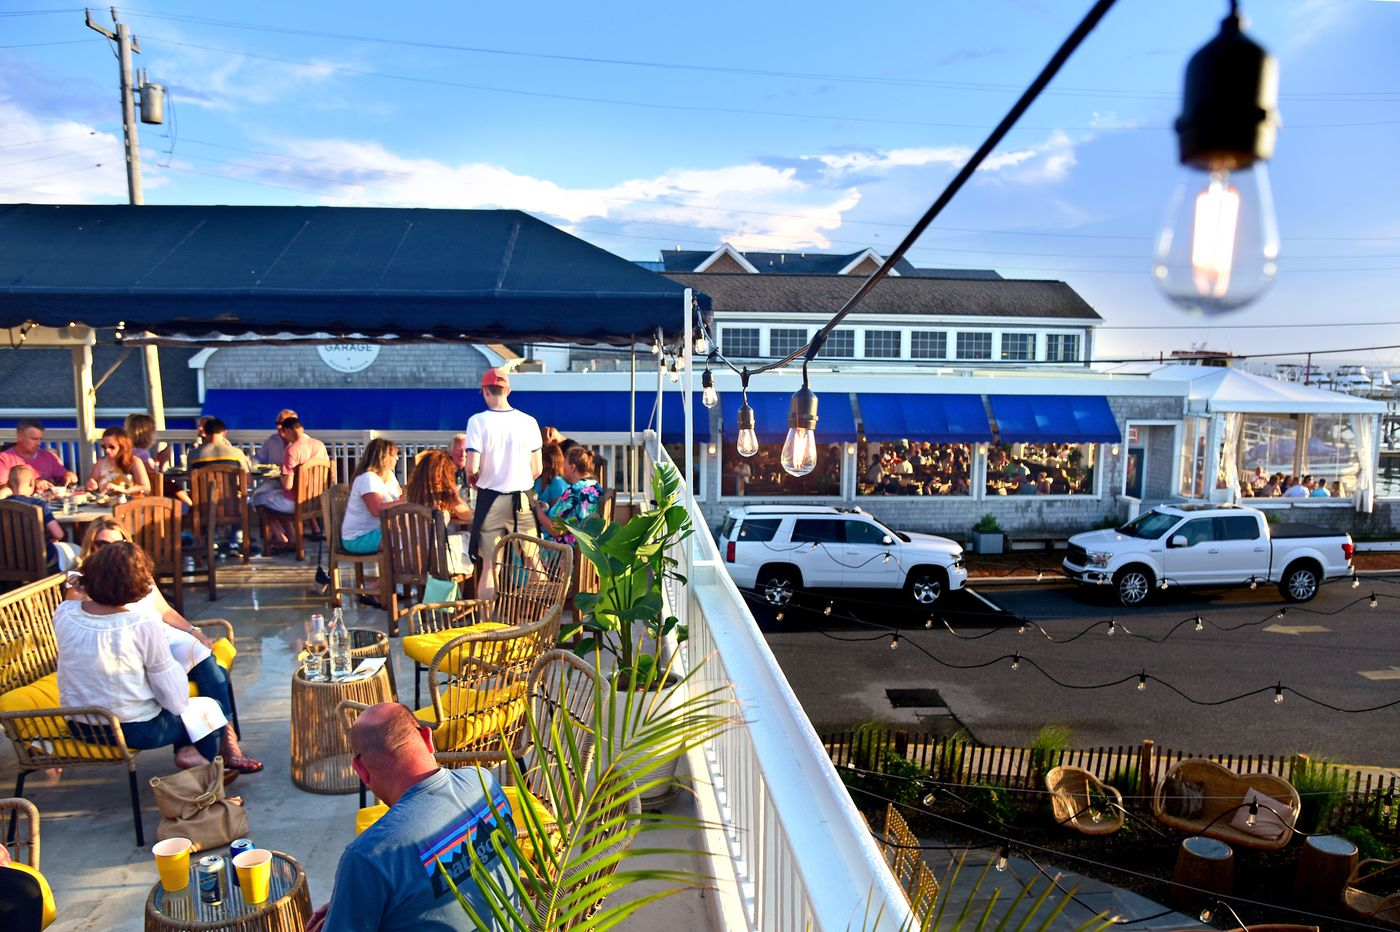 Shore Restaurants, Part I: Dining outdoors with bay breezes, sunsets, and fresh beach flavors